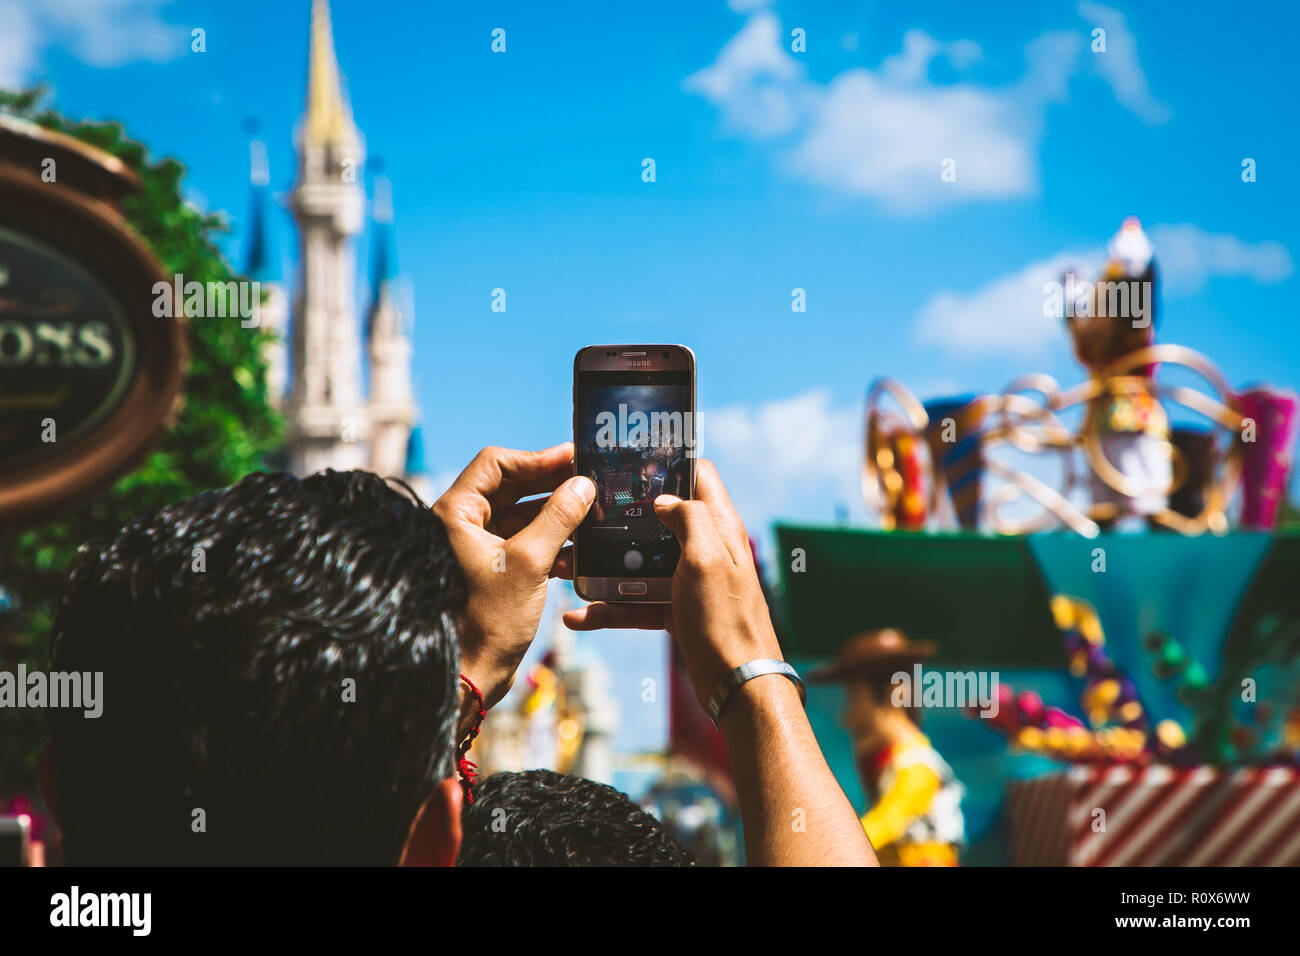 Orlando Attraction Stock Photo